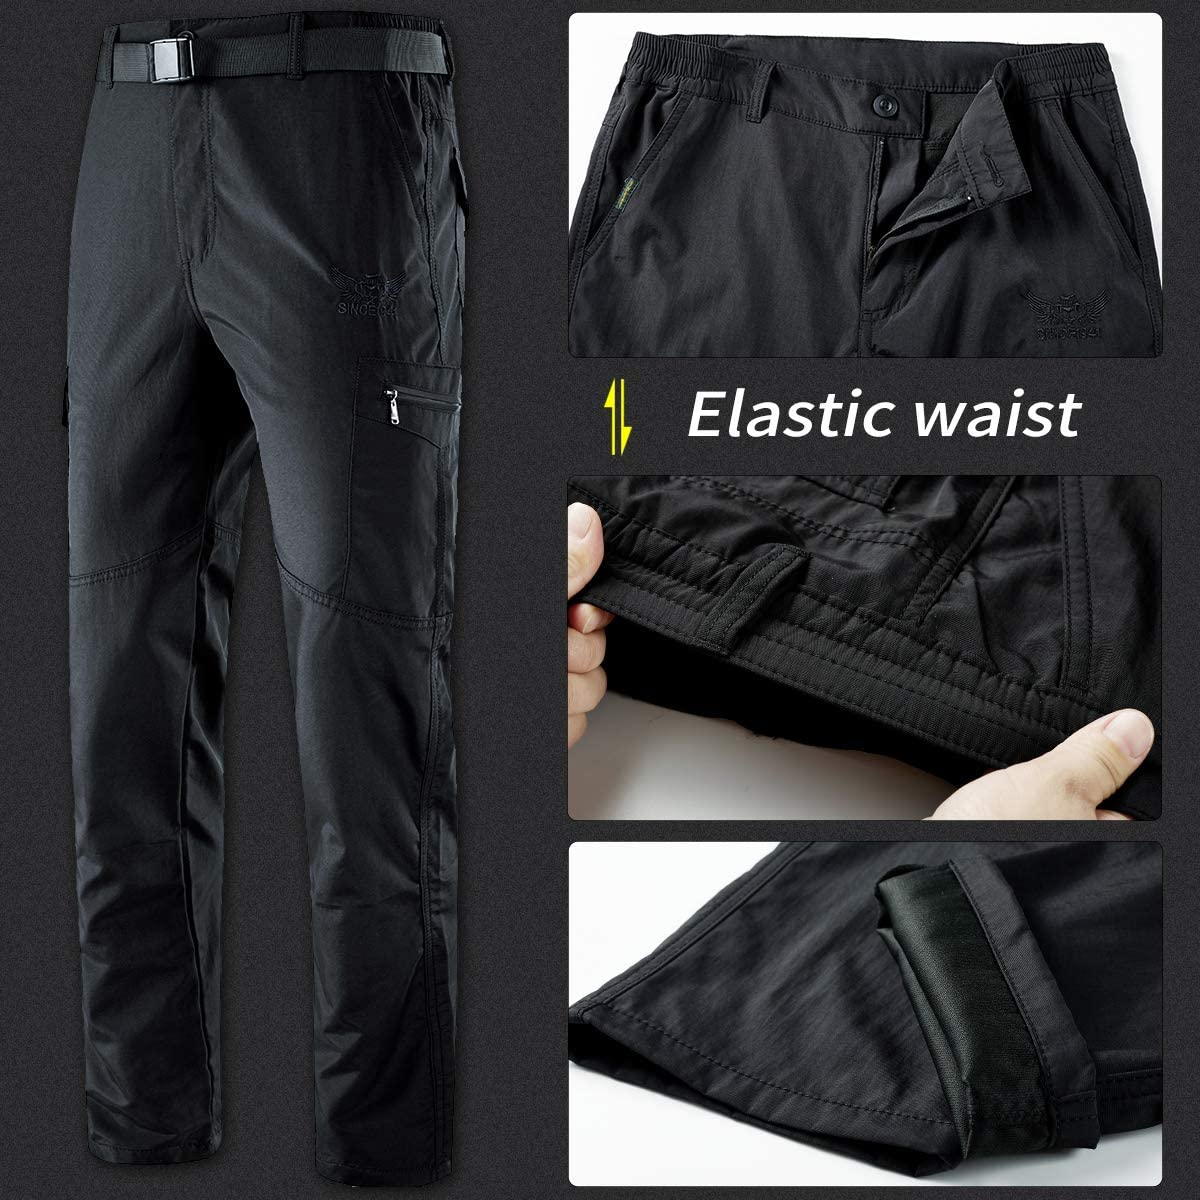 YAWHO Mens Outdoor Hiking Trousers Quick Dry Lightweight and Thick Fleece Climbing Fishing Cargo Camping Ski Softshell Pants with Belt